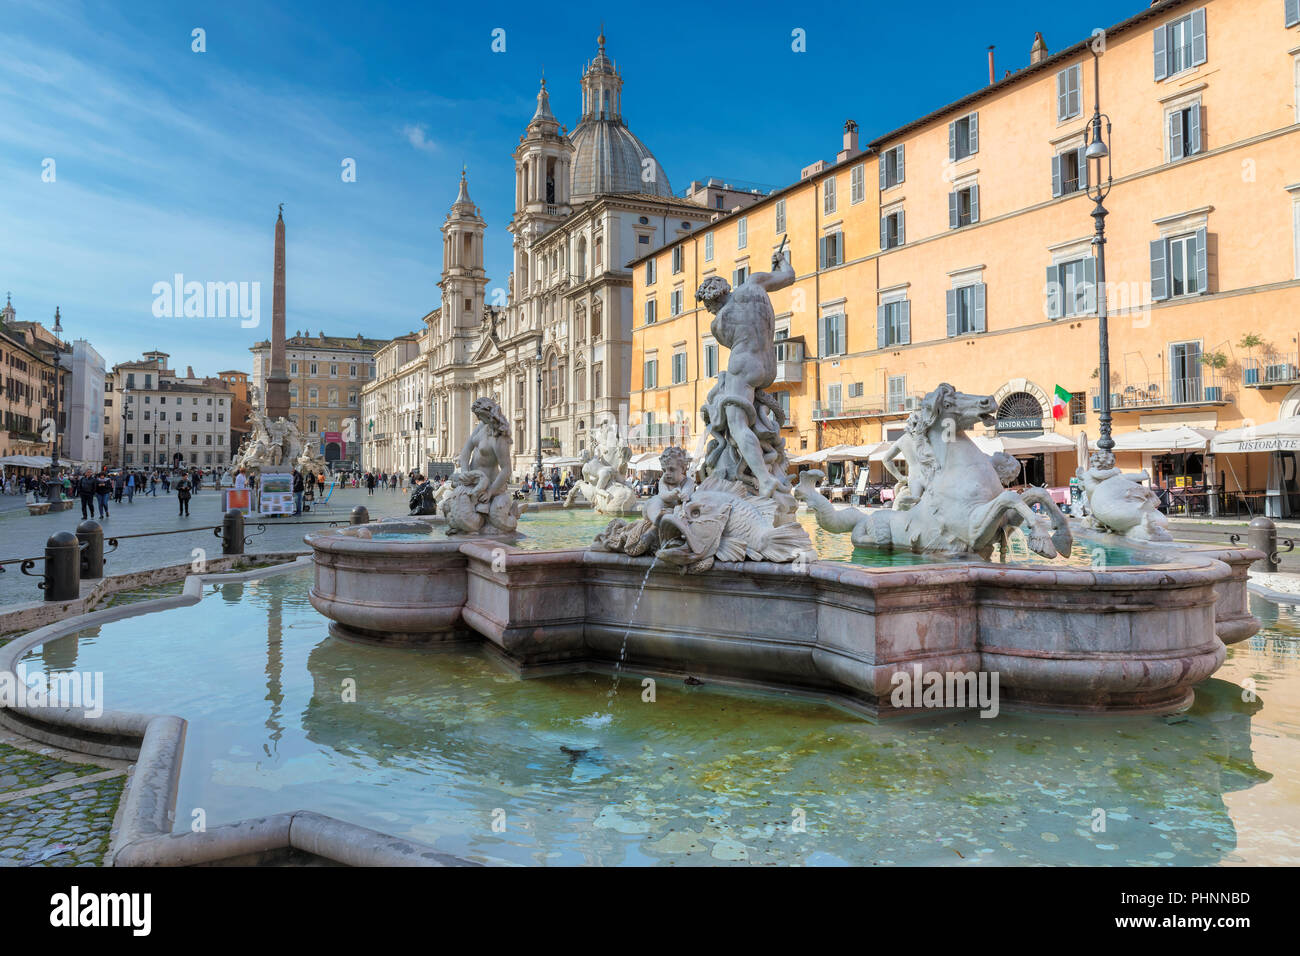 Piazza Navona in morning in Rome, Italy, Europe. - Stock Image